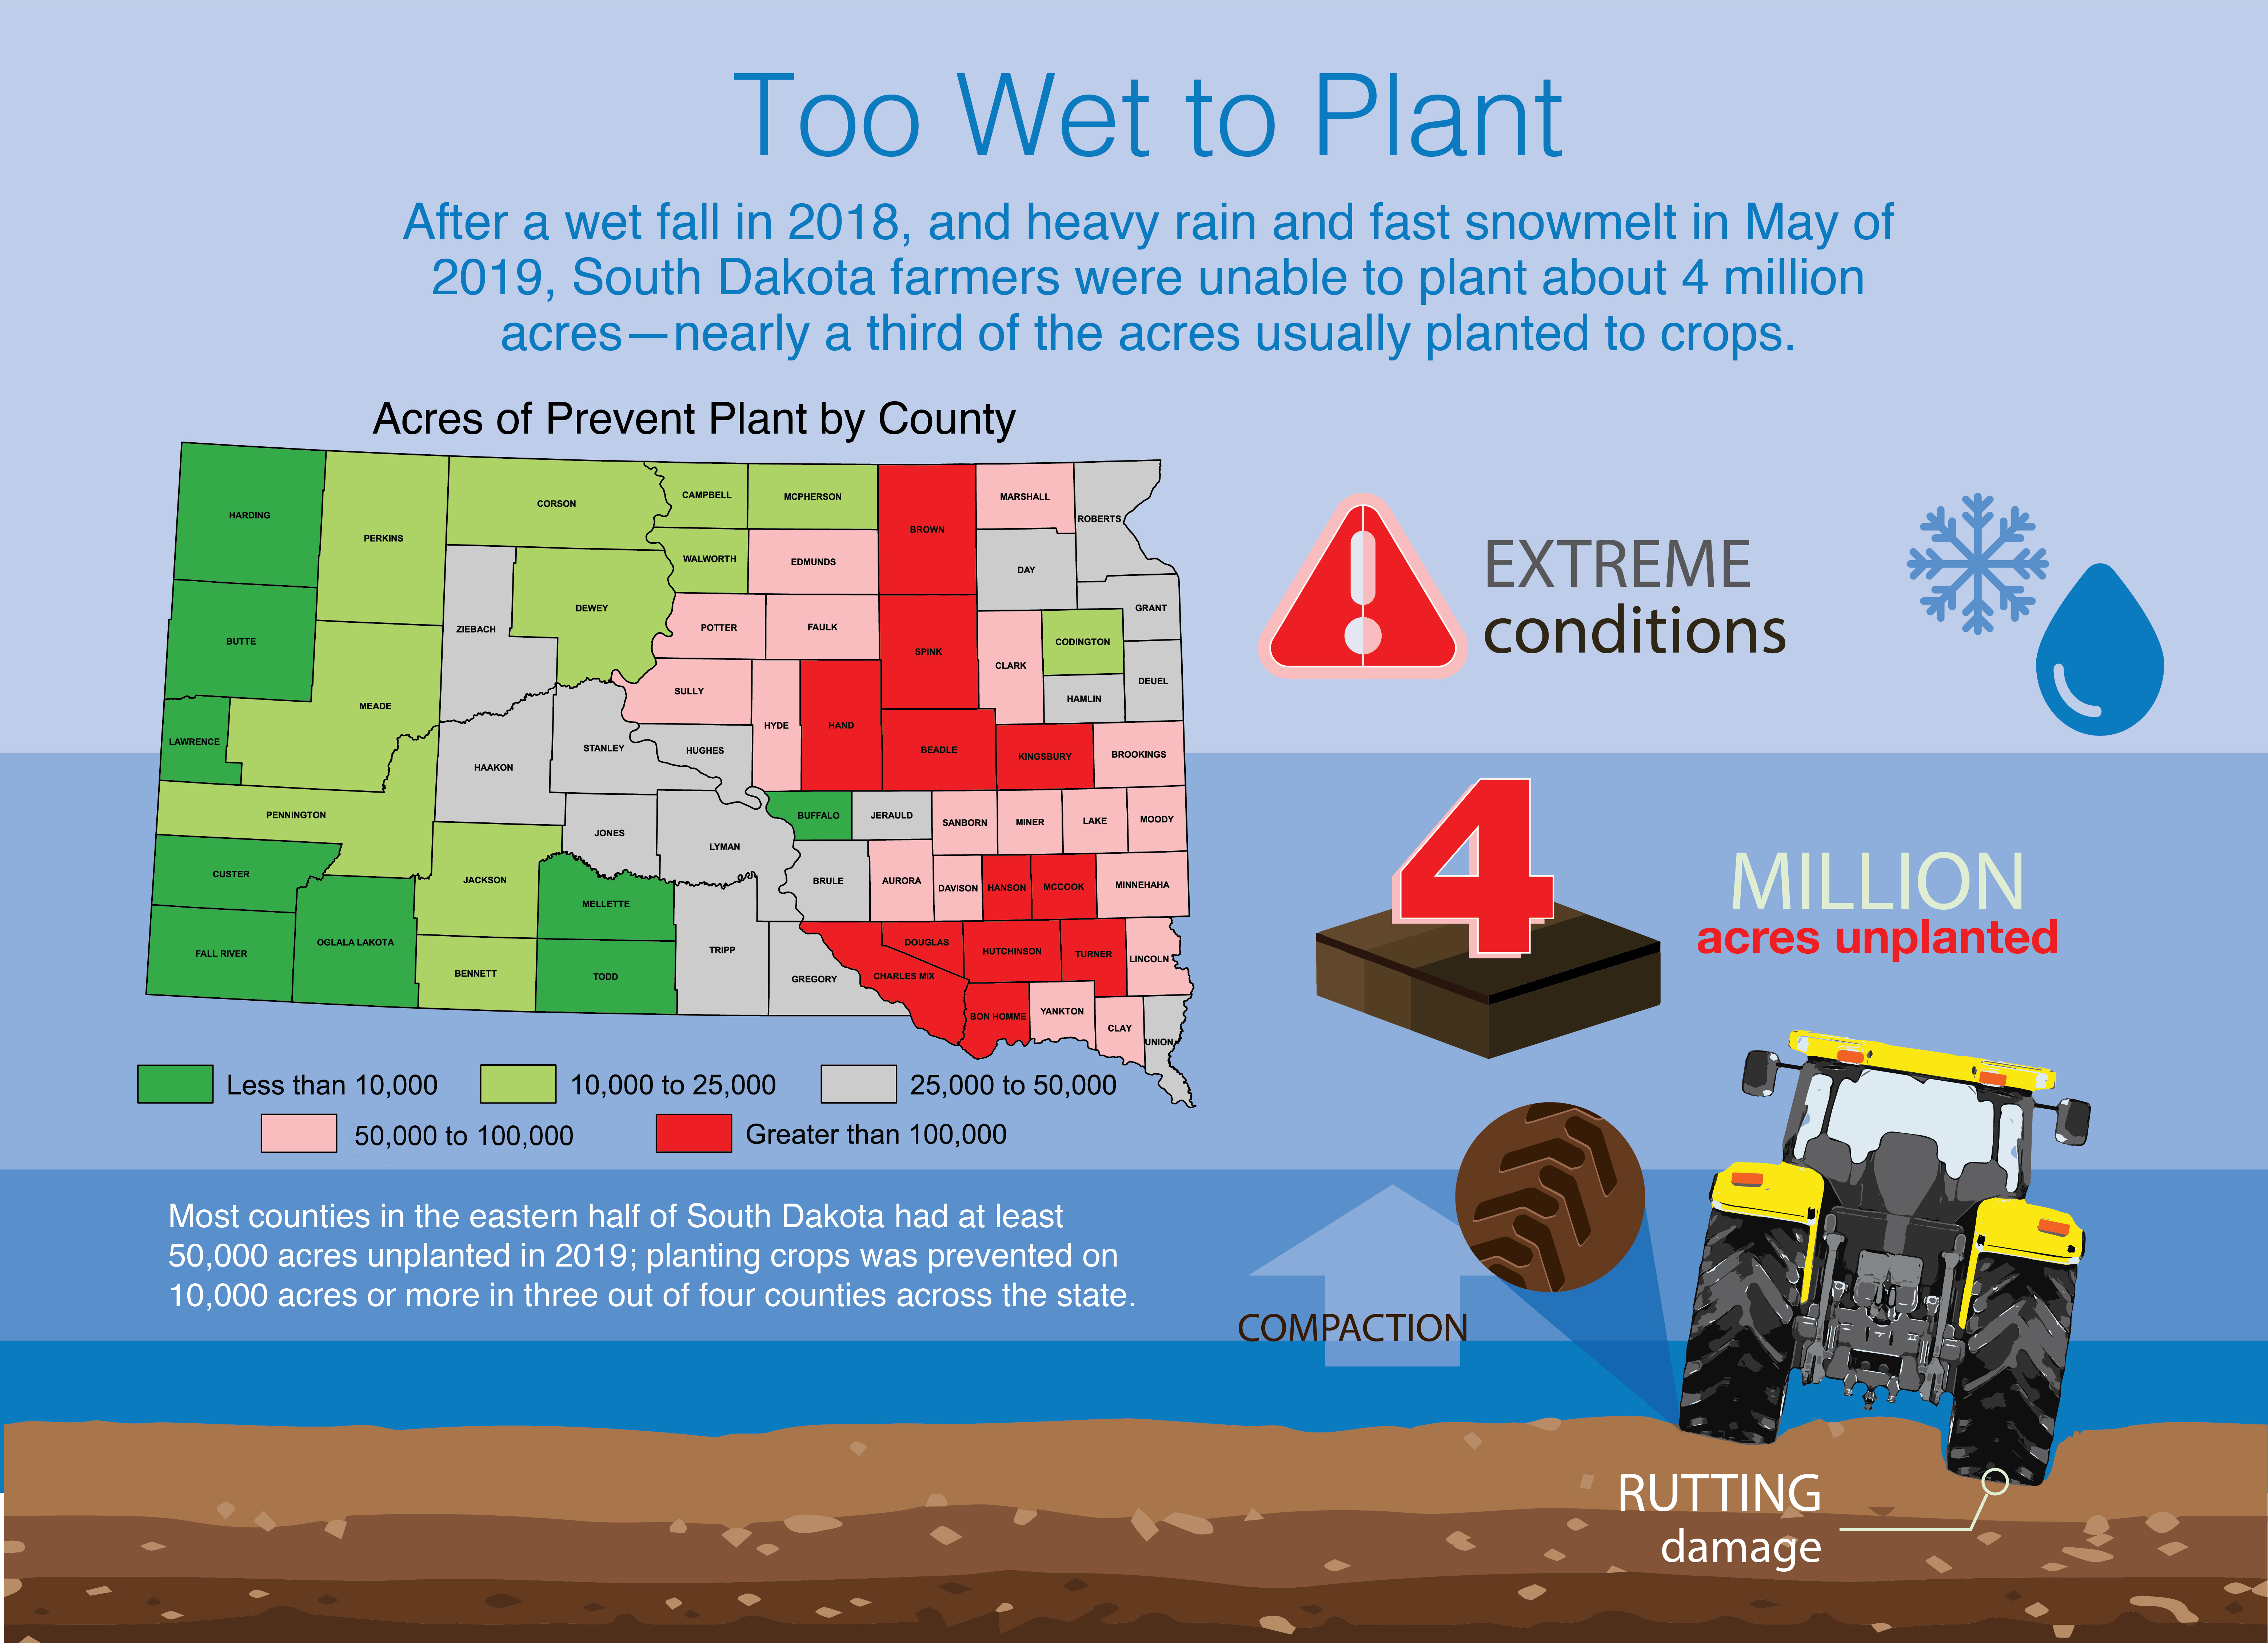 Graphic shows counties that were to wet to plant in 2019